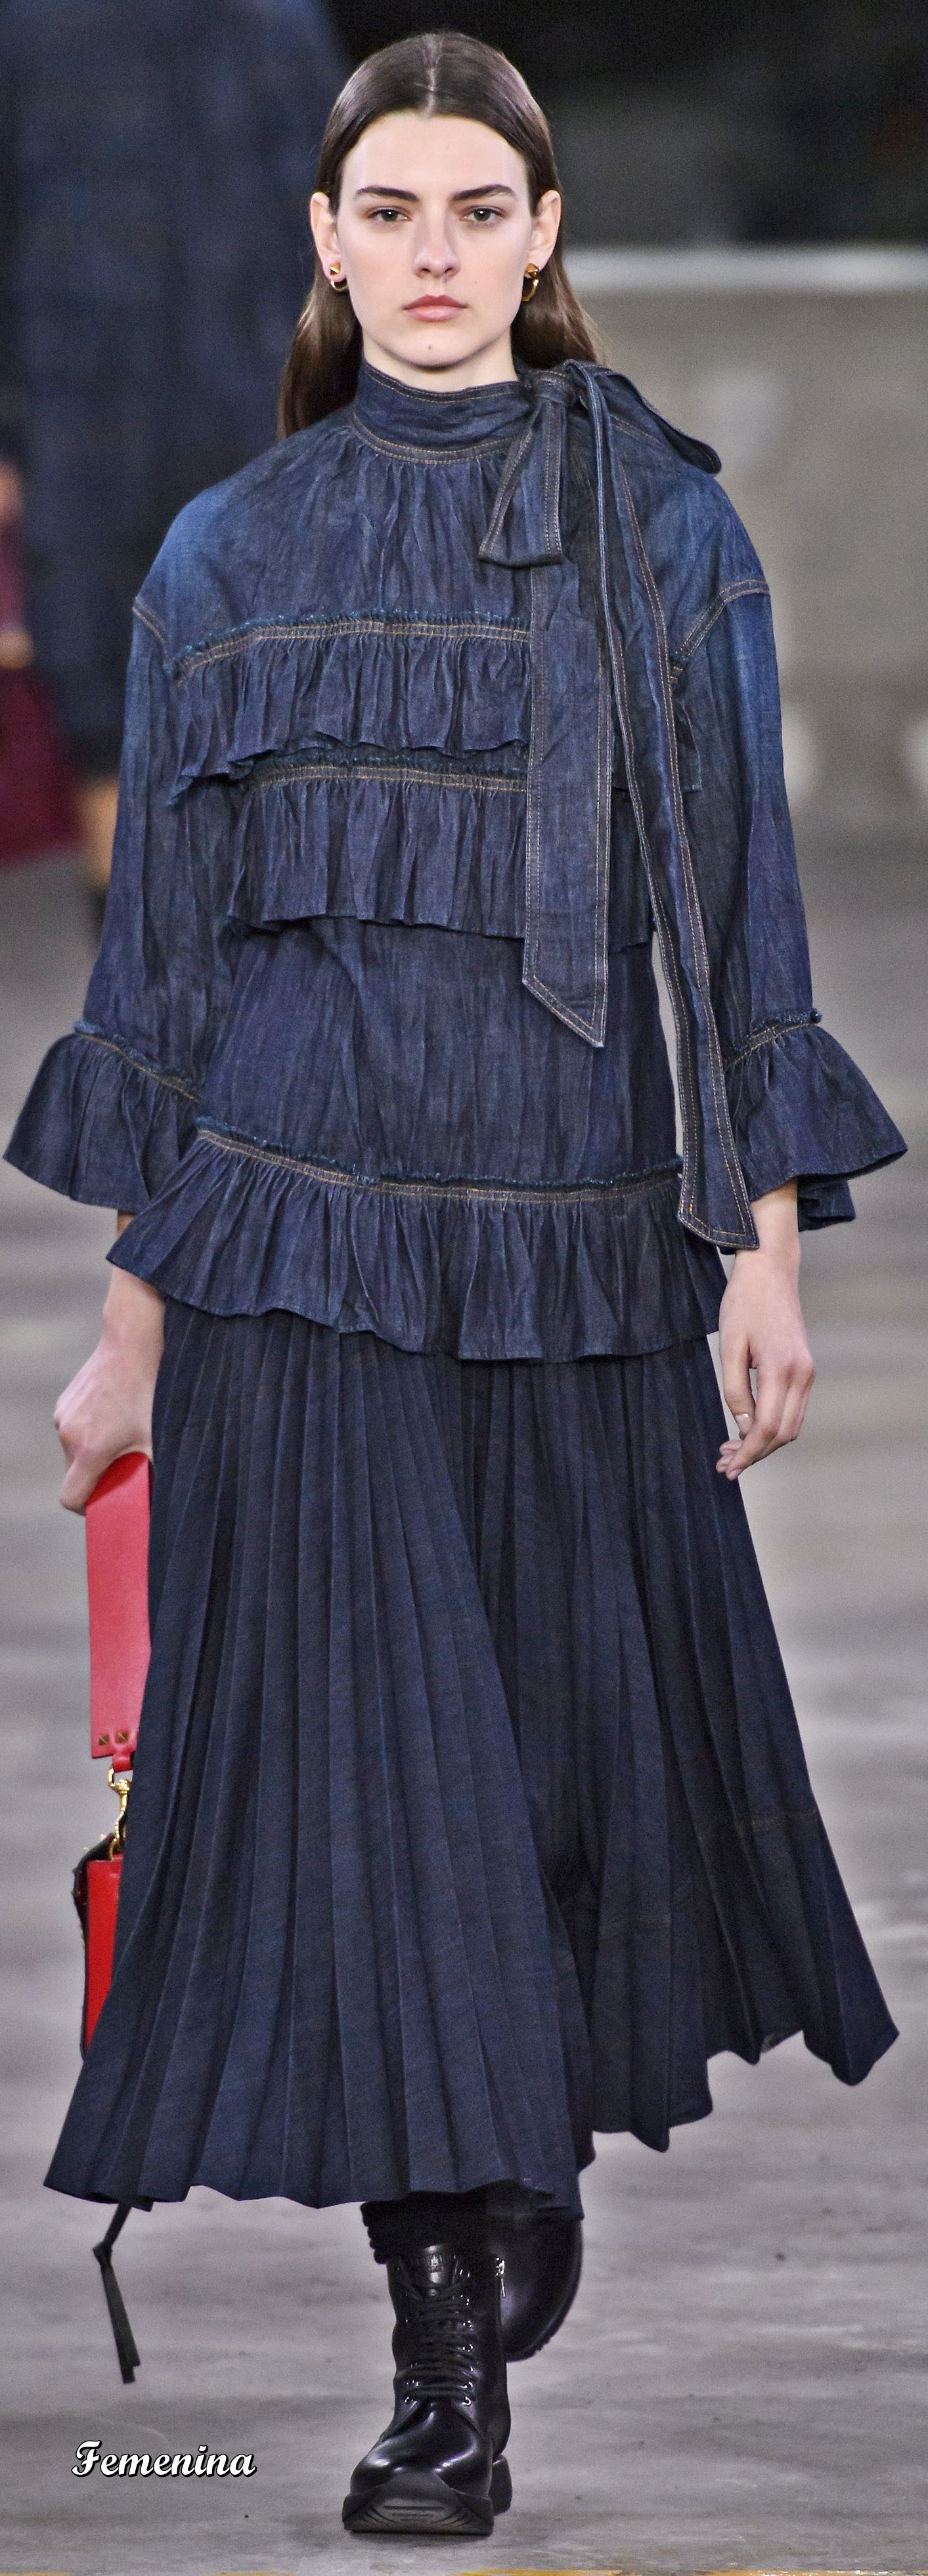 Fall Fashion With Jeans Dress 2020, Ideas, Picture Valentino Pre Fall/Winter 2019 2020 | Denim clothing in 2019